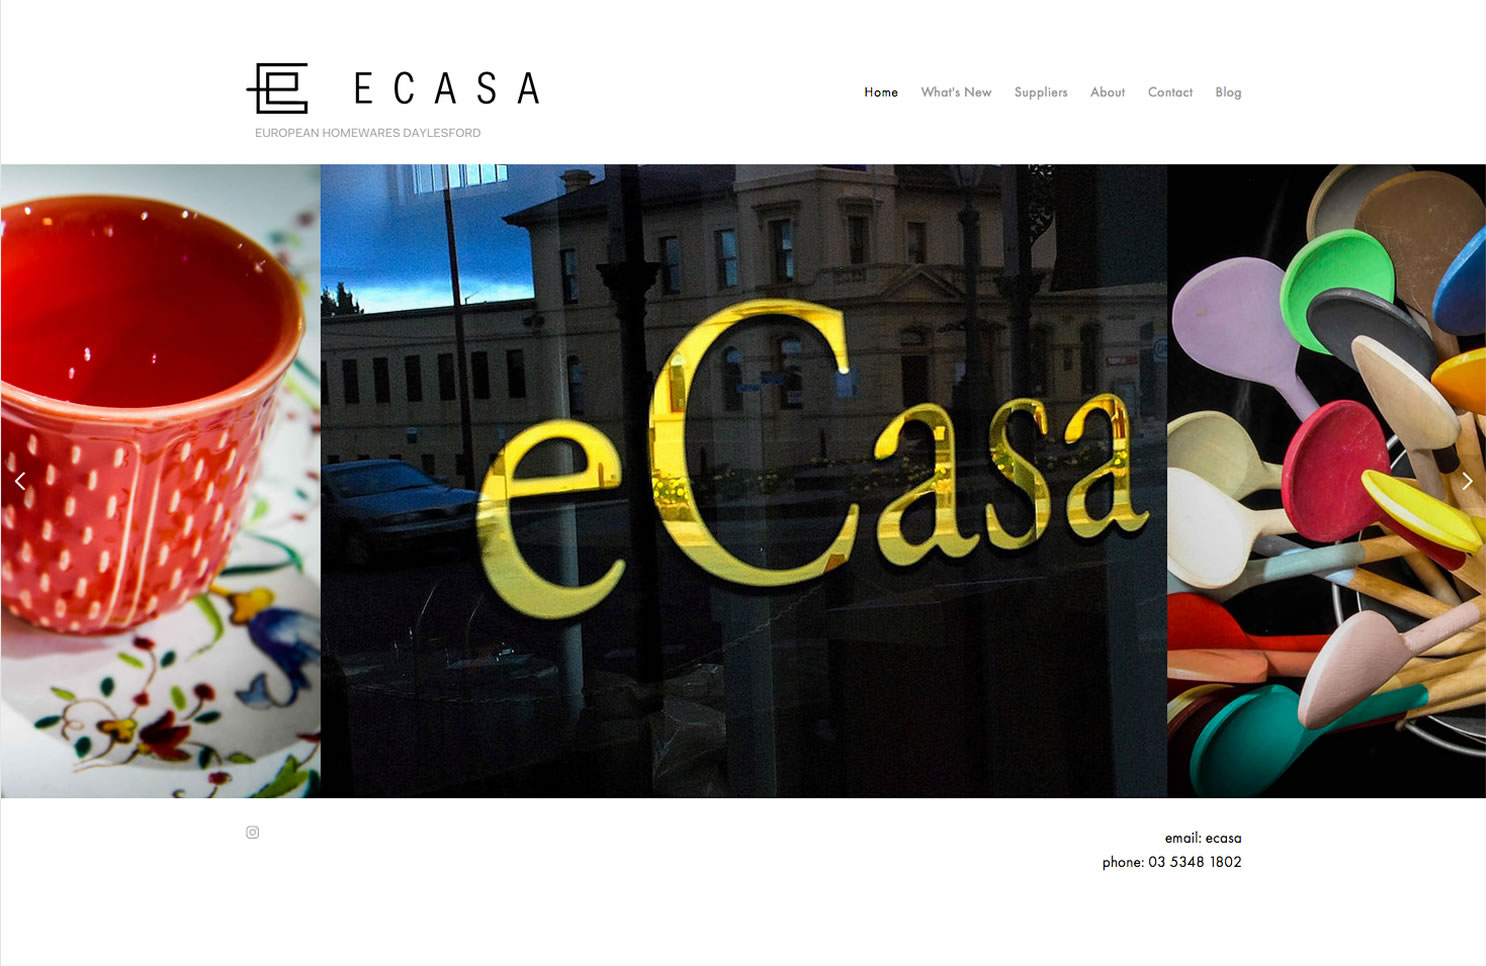 - eCasa is located in the town of Daylesford in the central Victorian goldfields region. The shop specializes in European Home-wares and is well worth a visit when you are in town. The site is under construction.http://ecasadaylesford.com.au